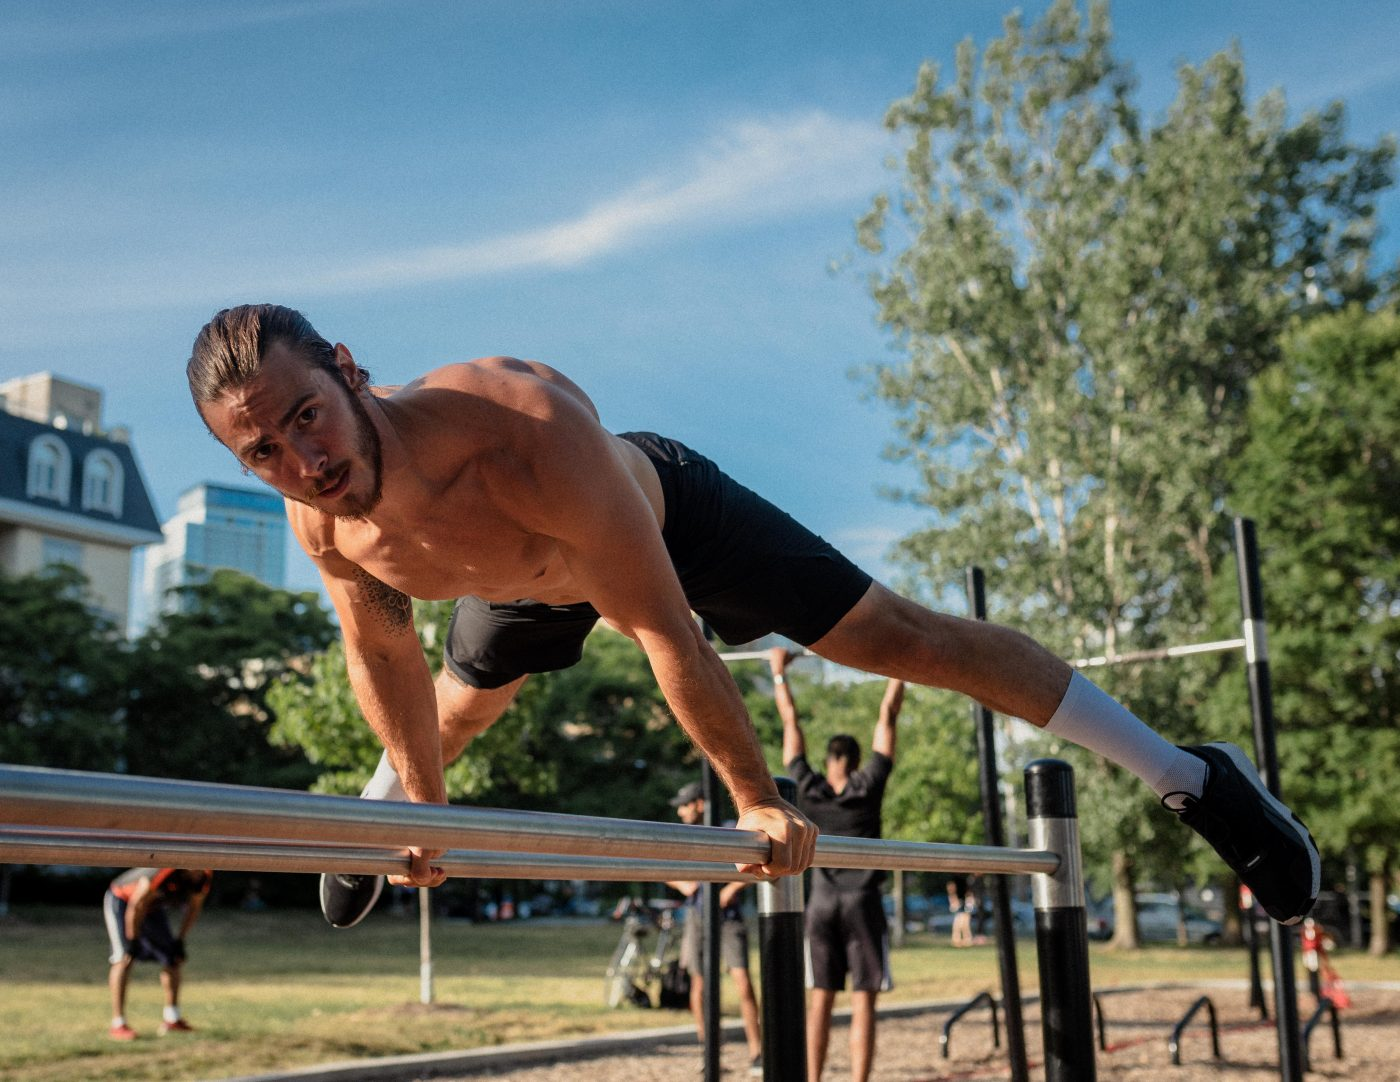 MONDAY WORKOUT ROUTINE – Planche Training